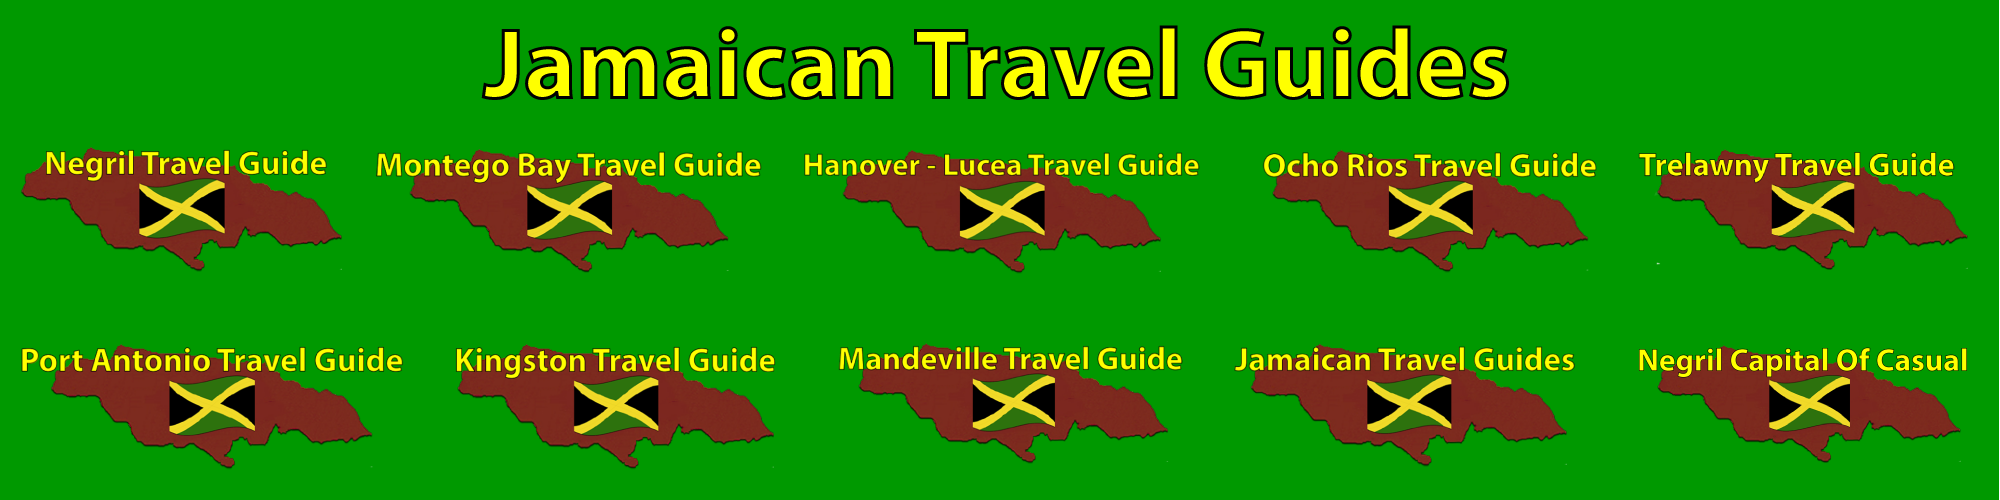 Jamaican Travel Guides - www.jamaicantravelguides.com - www.jamaicatravelguides.com